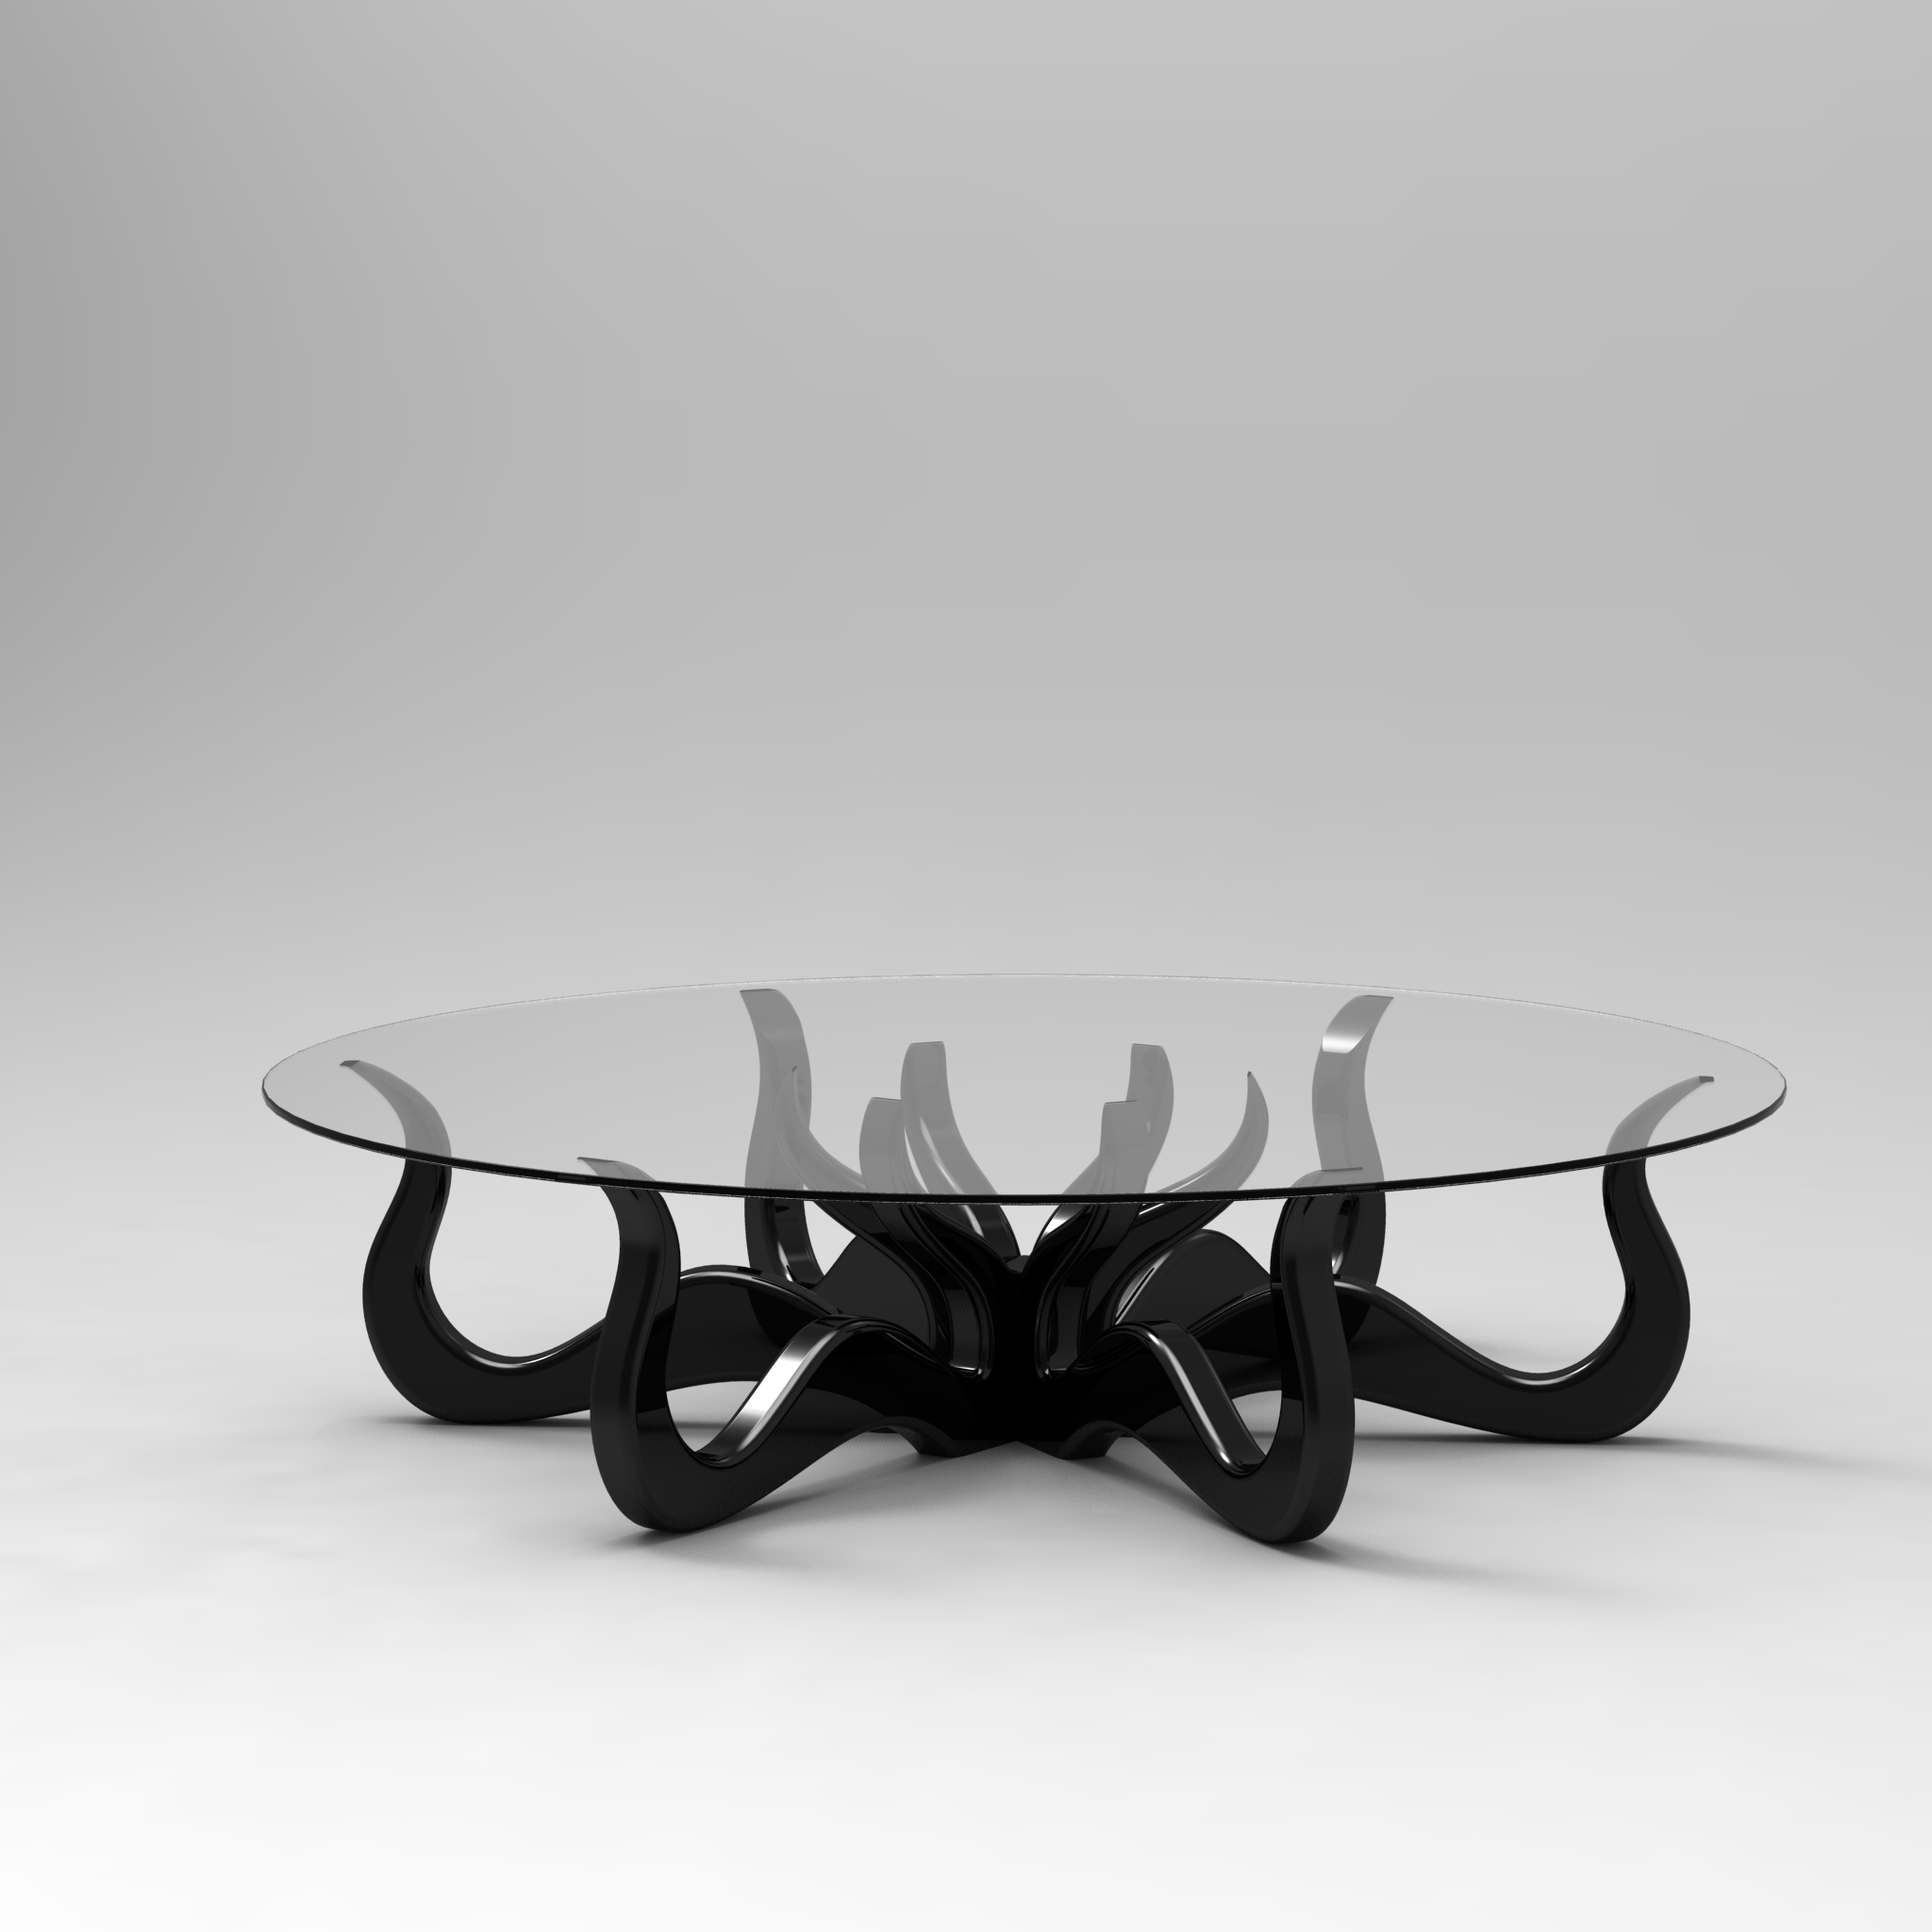 Octopus Coffee Table with Detailed Sculpture Roy Home Design